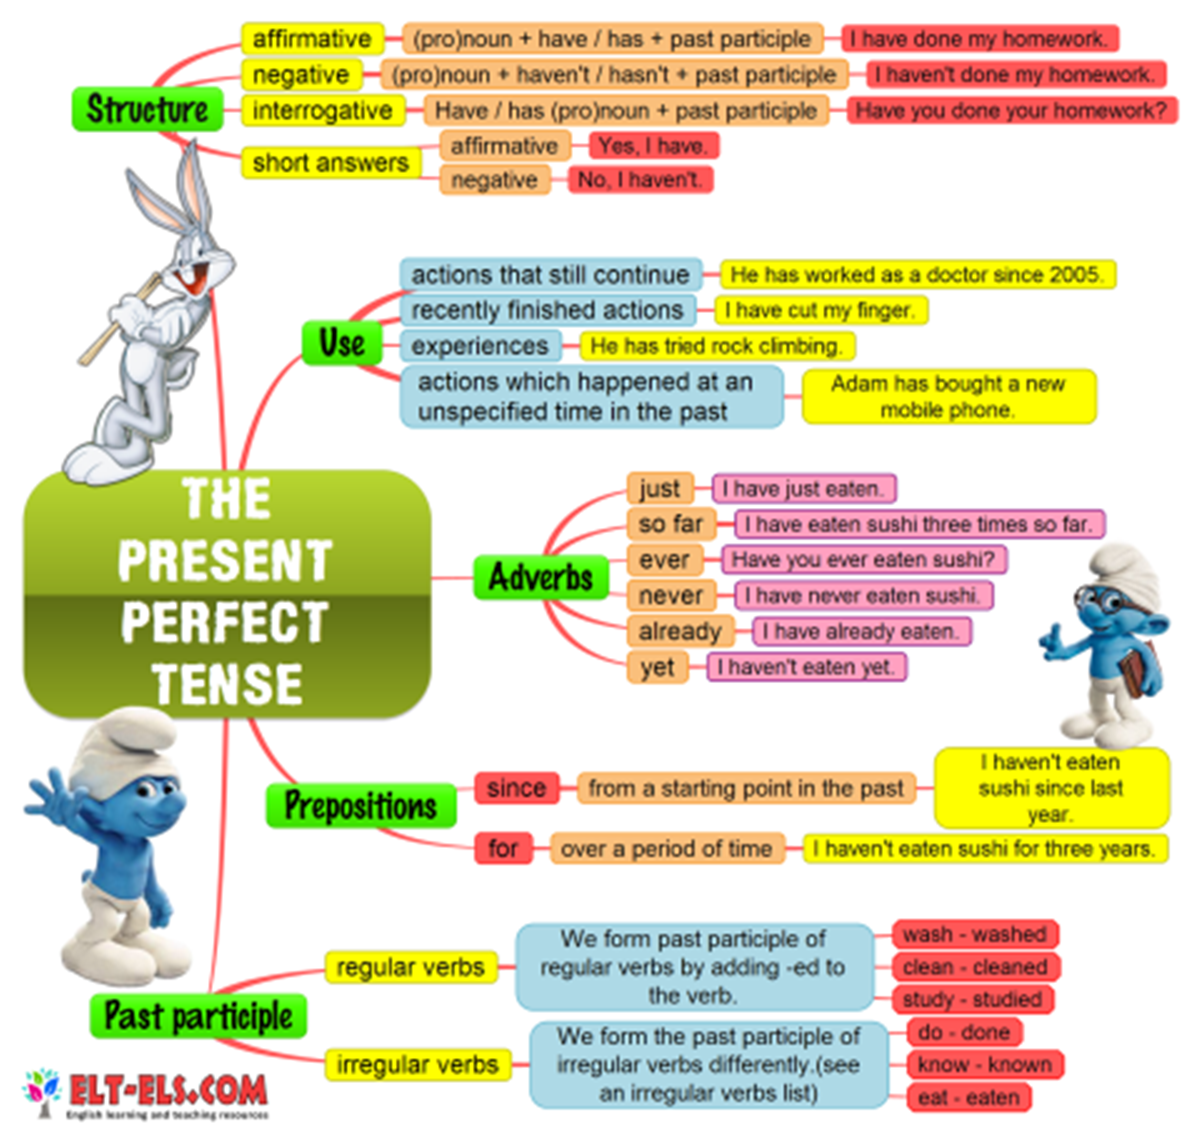 The Present Perfect Tense in English 3